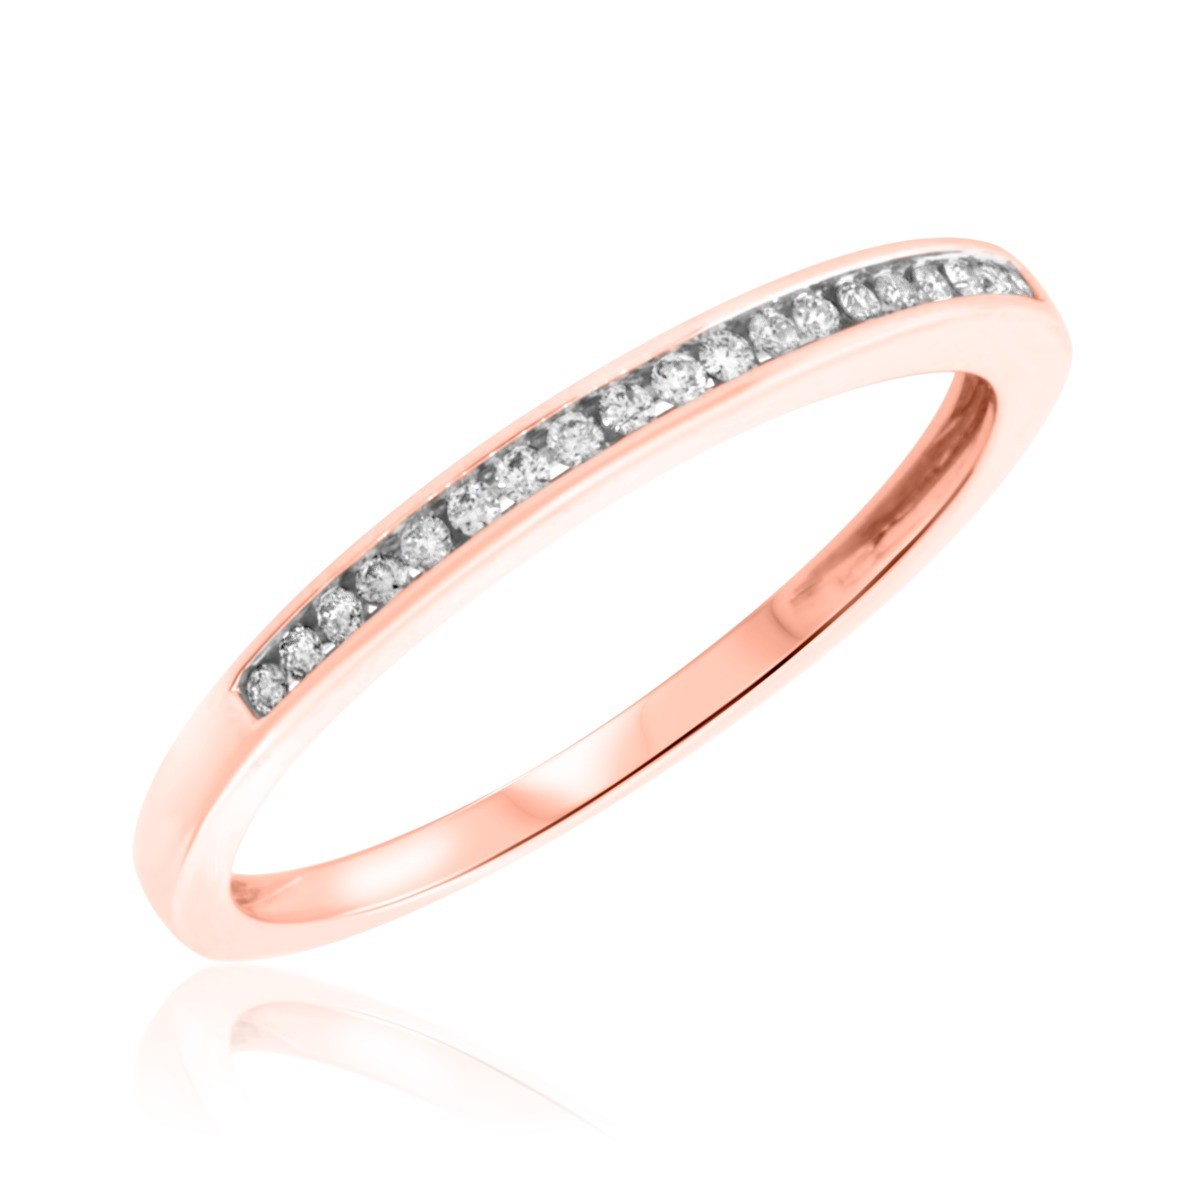 1/5 Carat T.W. Round Cut Diamond Ladies Wedding Band 14K Rose Gold